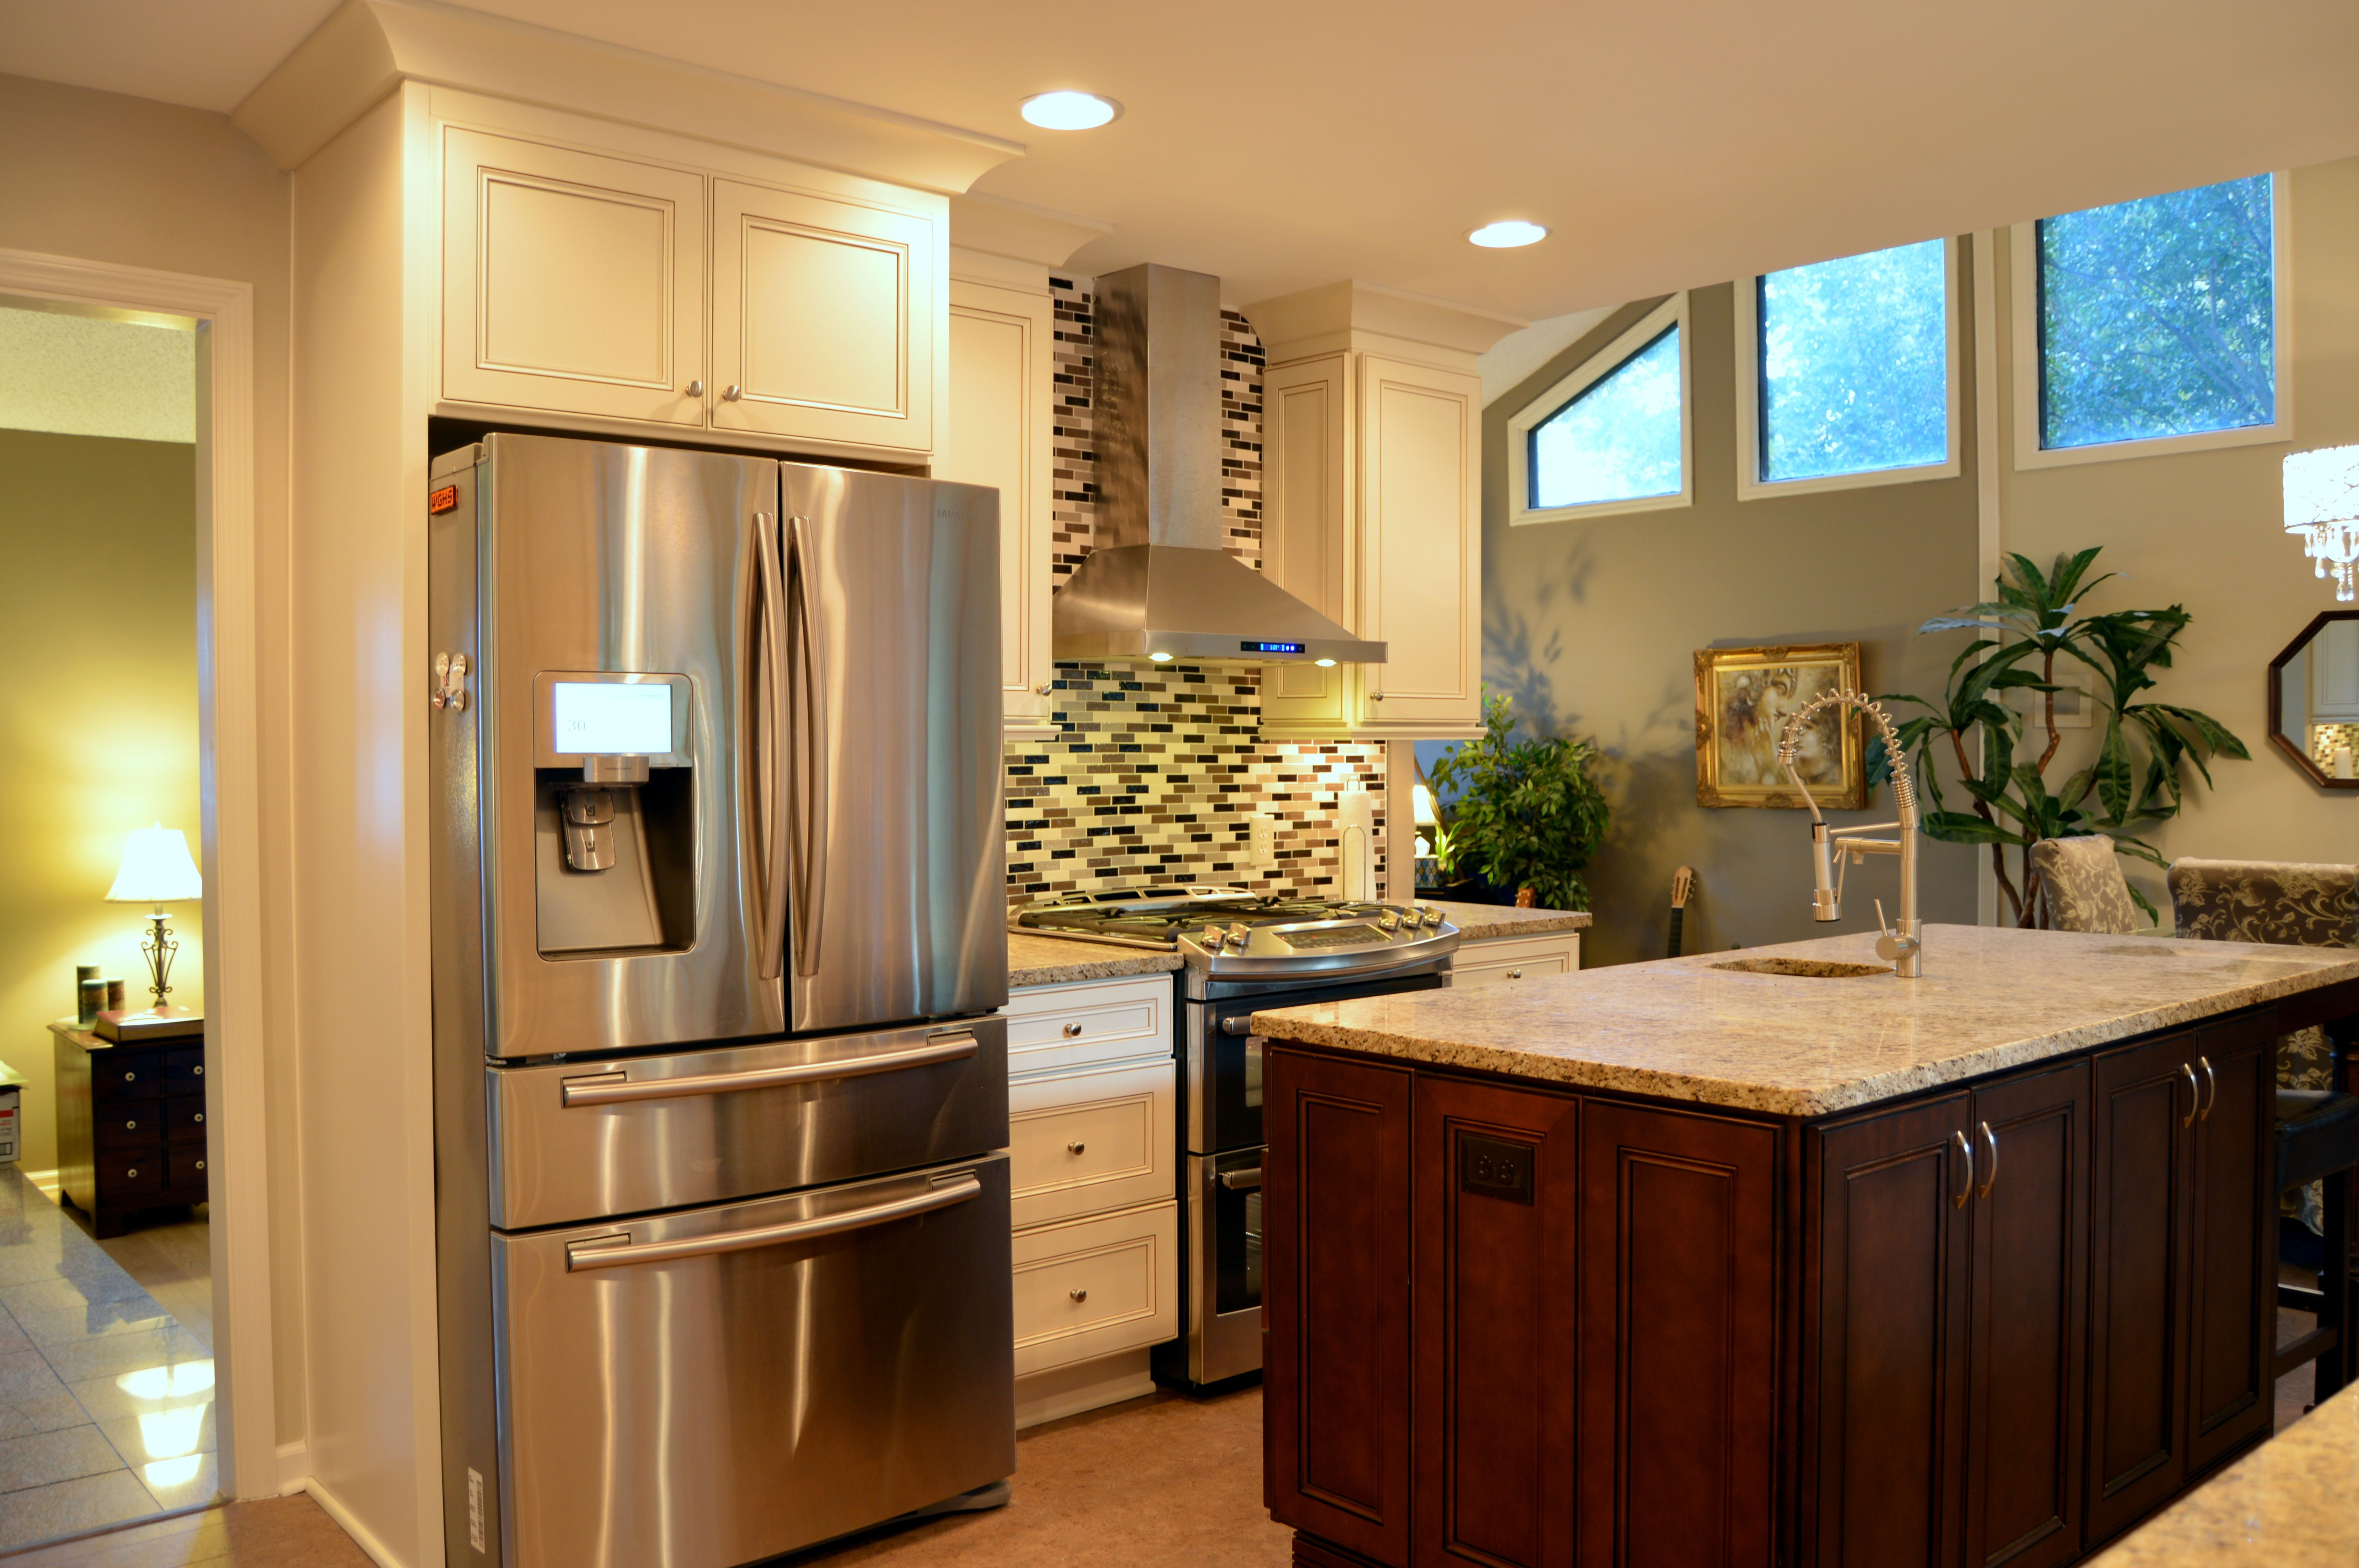 York Antique White And Chocolate Cabinets Mixed Glass Mosaic Backsplash Stainless Steel Applianc Glass Mosaic Backsplash Contemporary Kitchen Kitchen Remodel